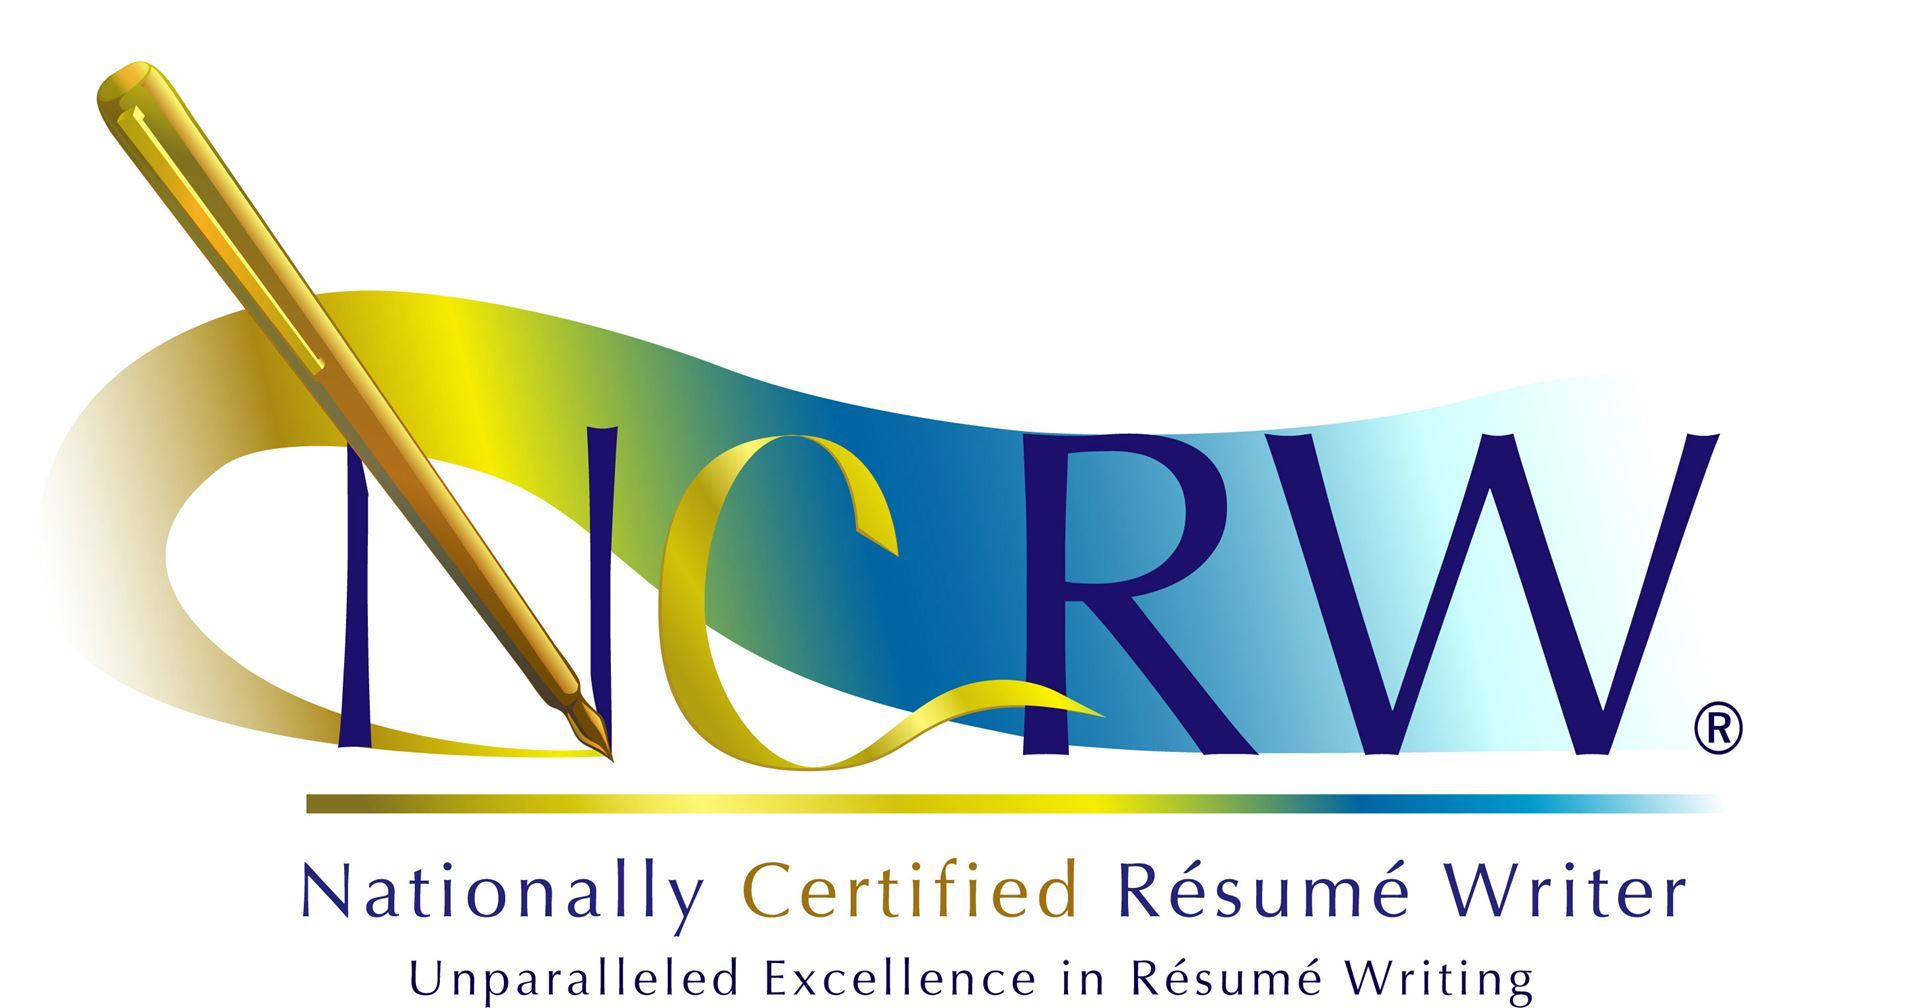 the national rsum writers association find a nationally certified resume writer - Resume Writing